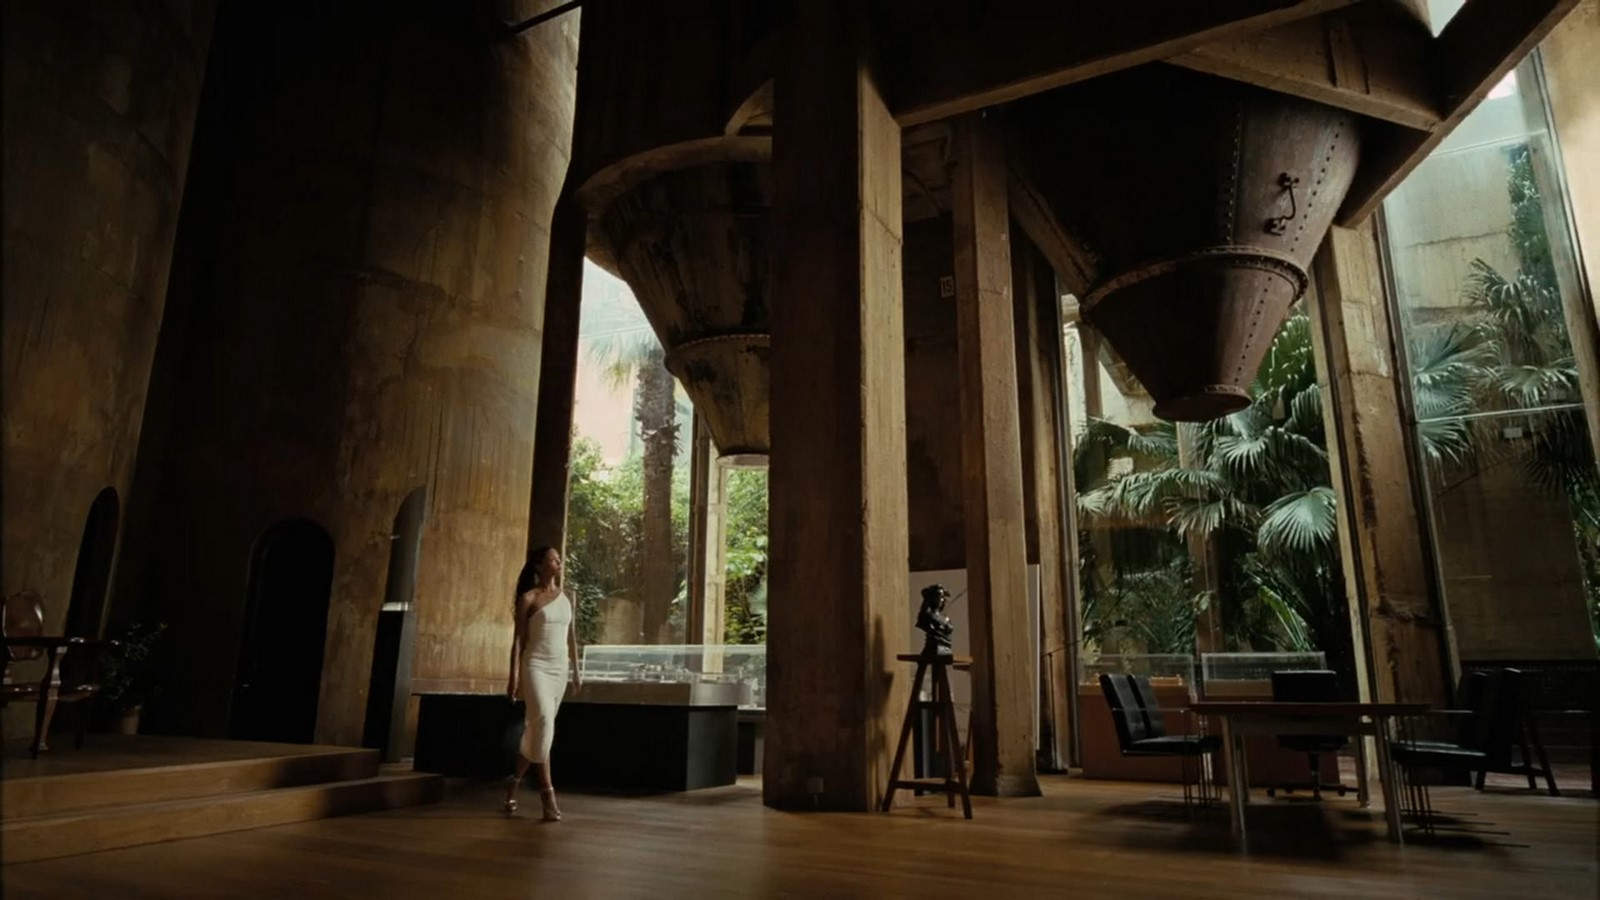 How can architecture in Sci-fi movies inspires today's architects - Sheet5